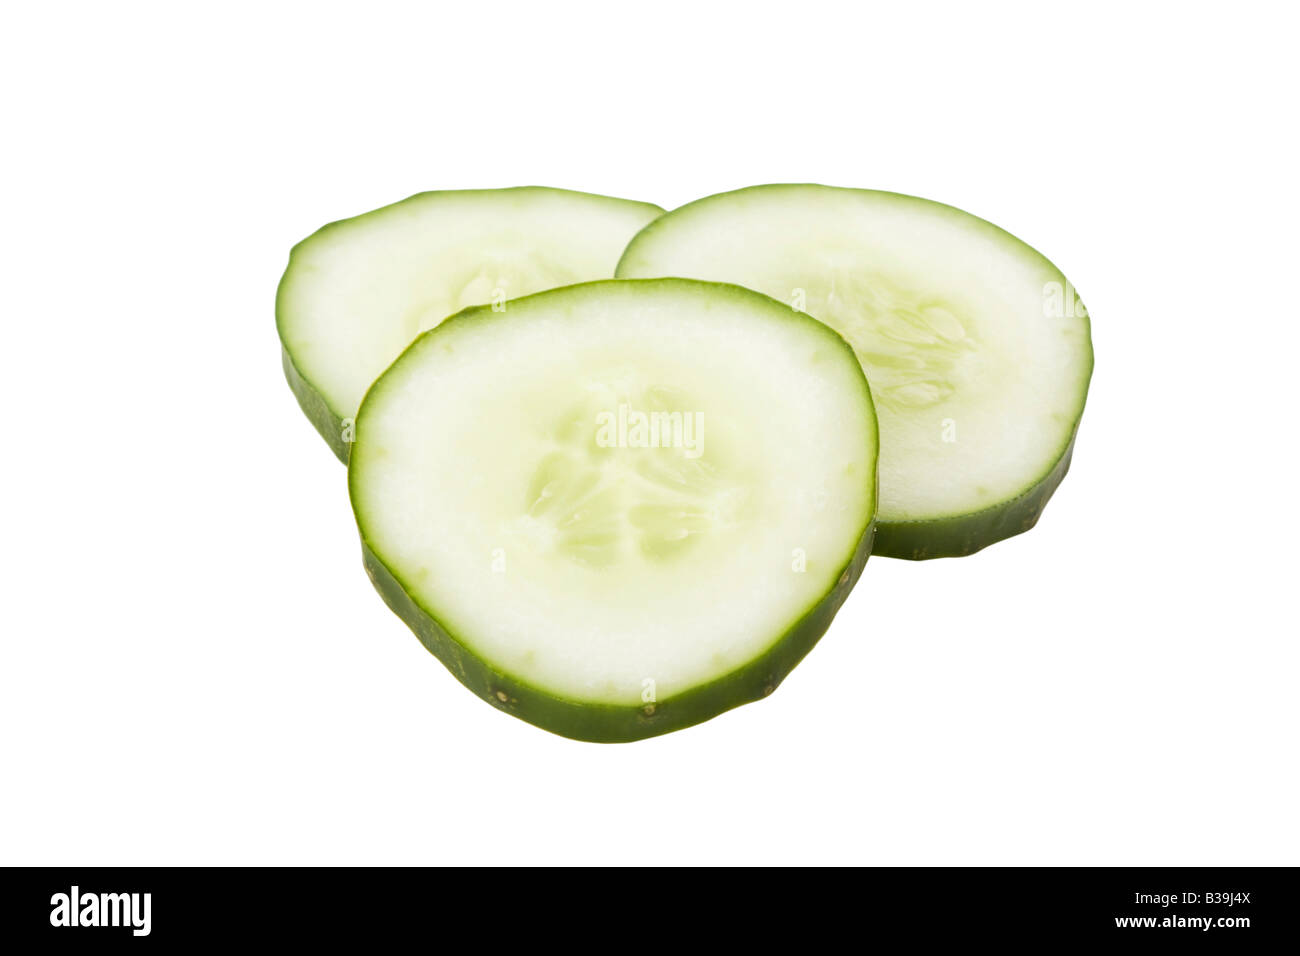 Cucumber slices isolated on a white background - Stock Image